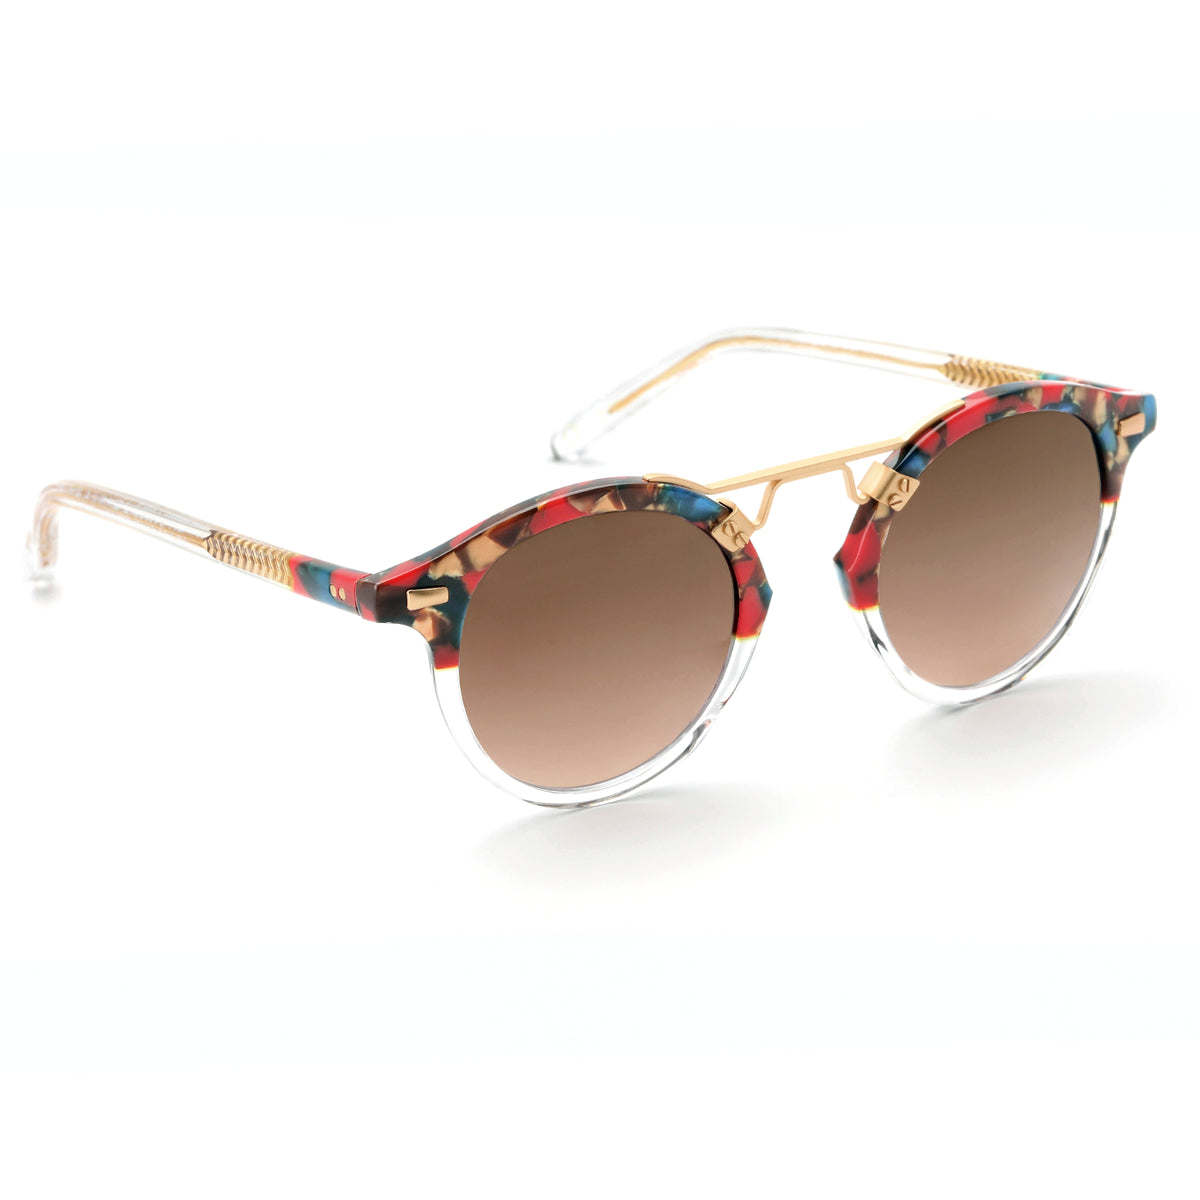 ST. LOUIS Carnevale to Crystal - handcrafted acetate eyewear